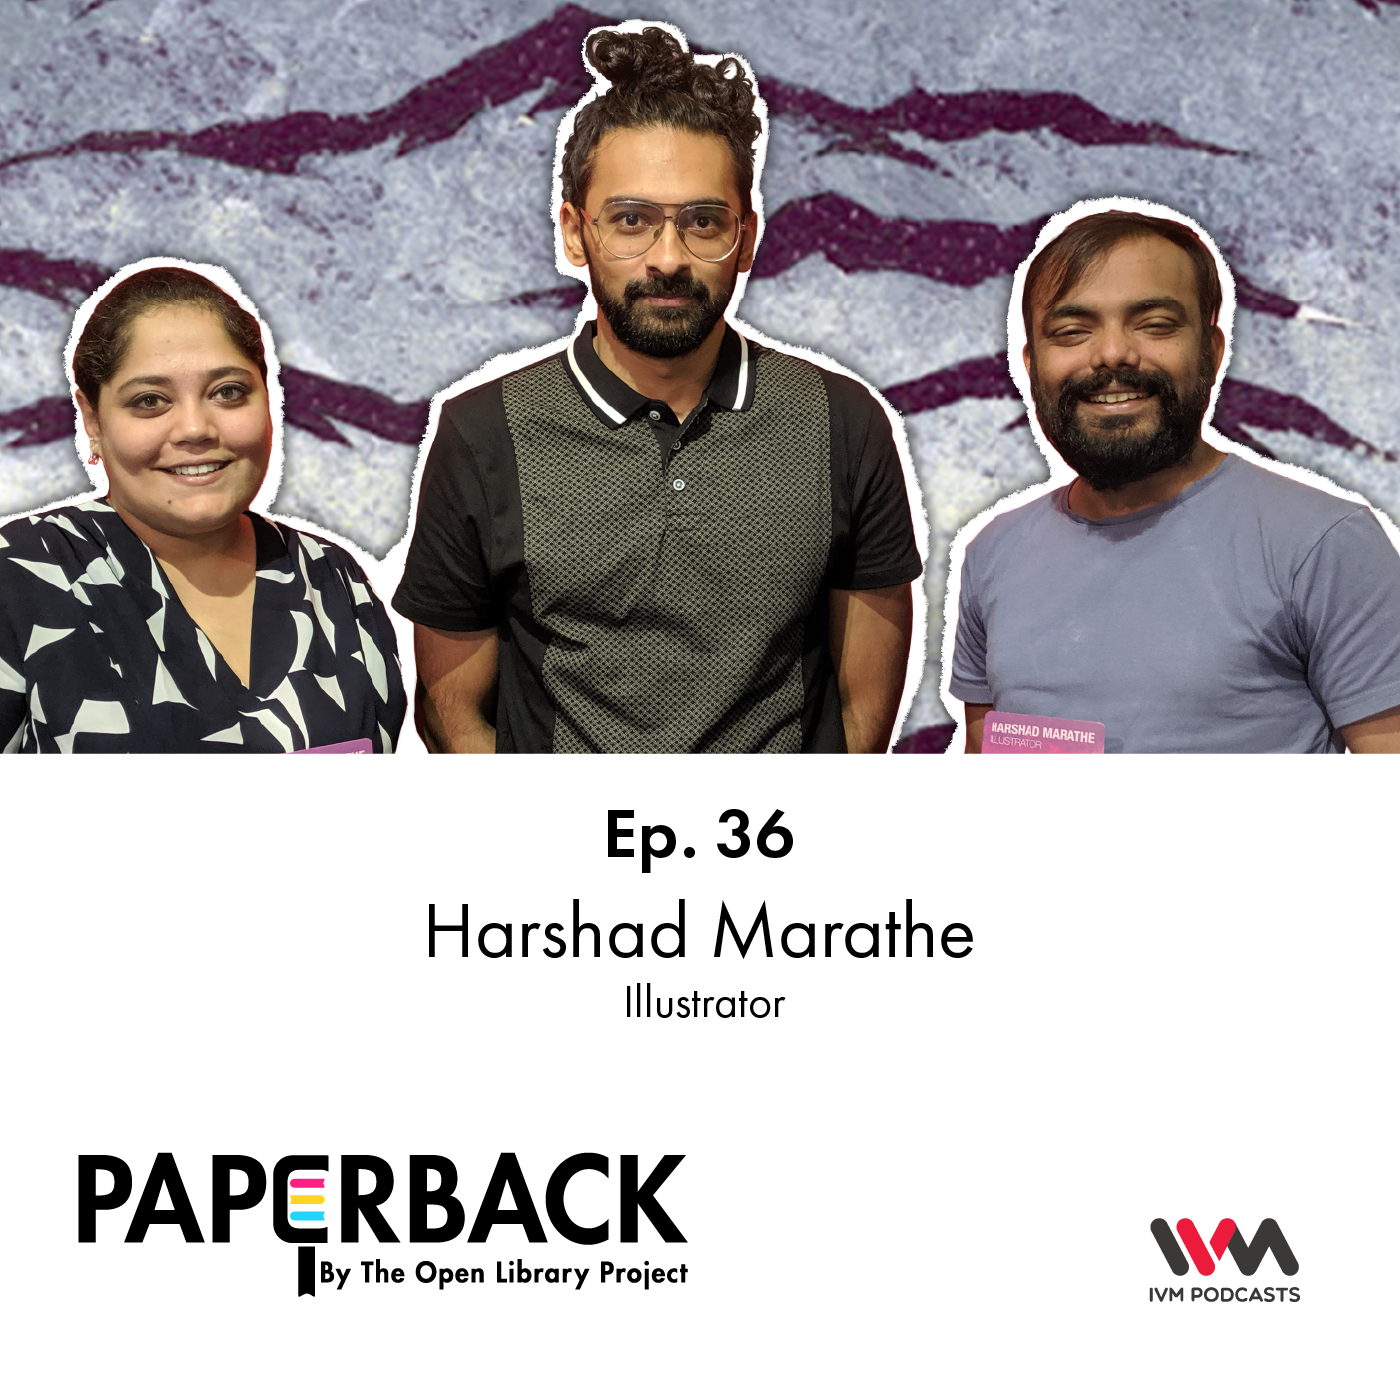 Ep. 36: Harshad Marathe